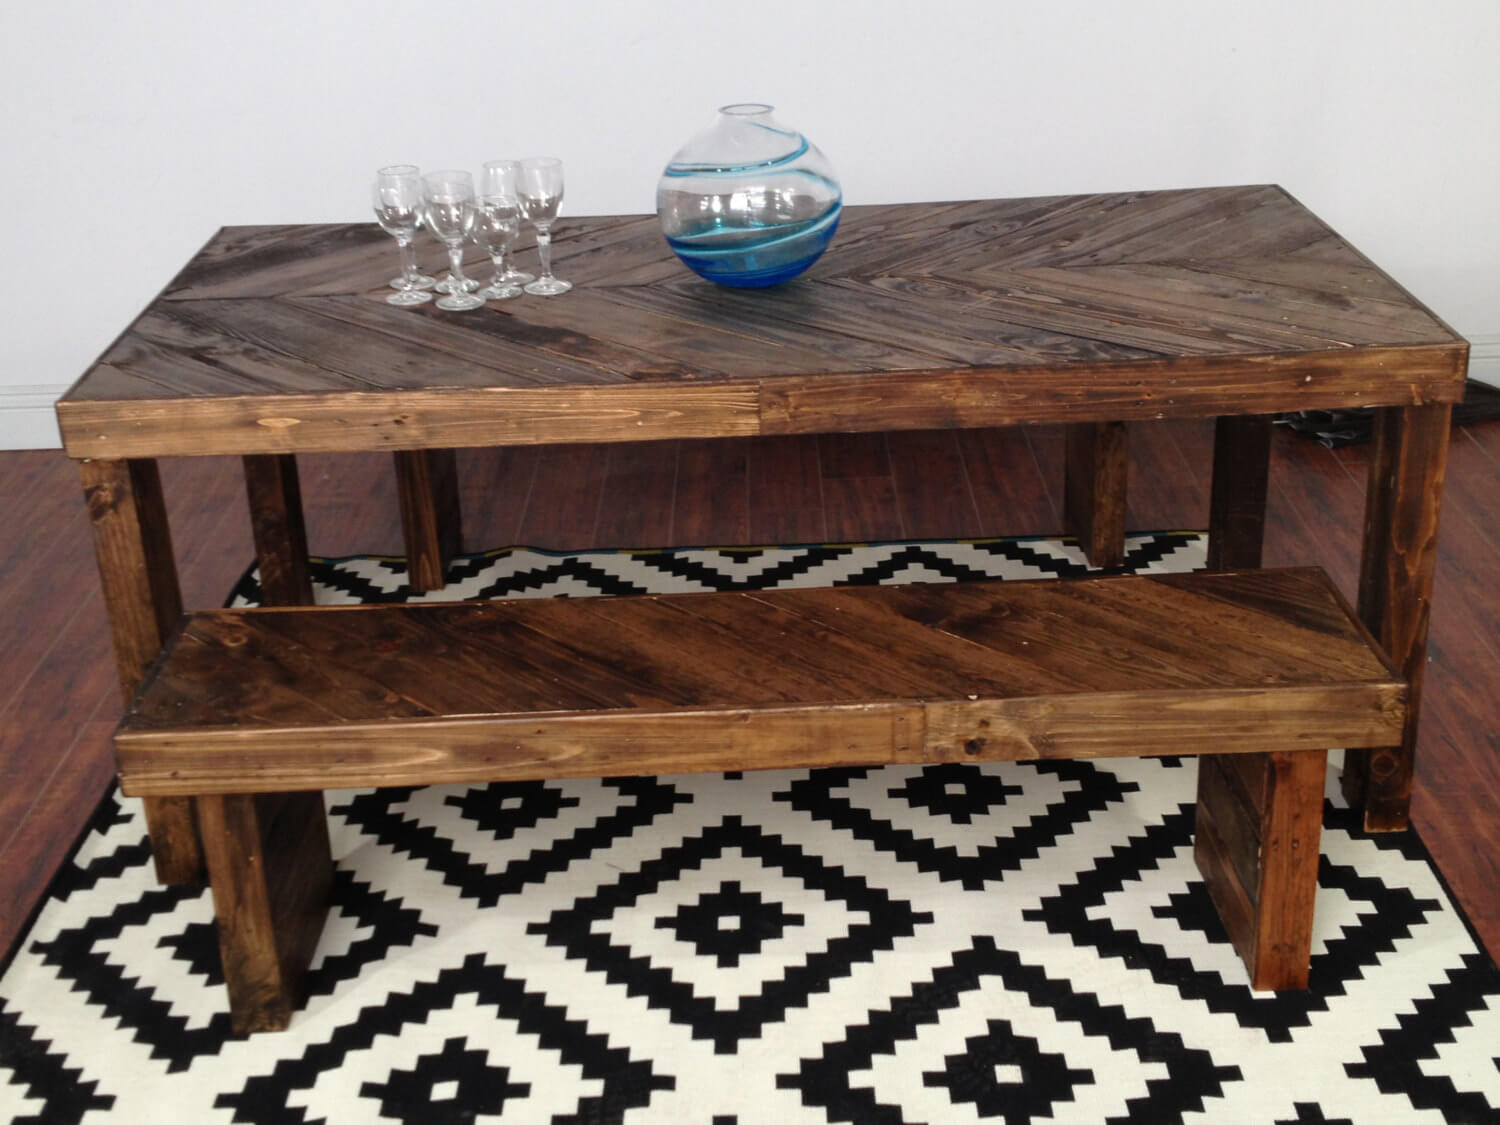 Recycled pallet chevron pattern table with bench